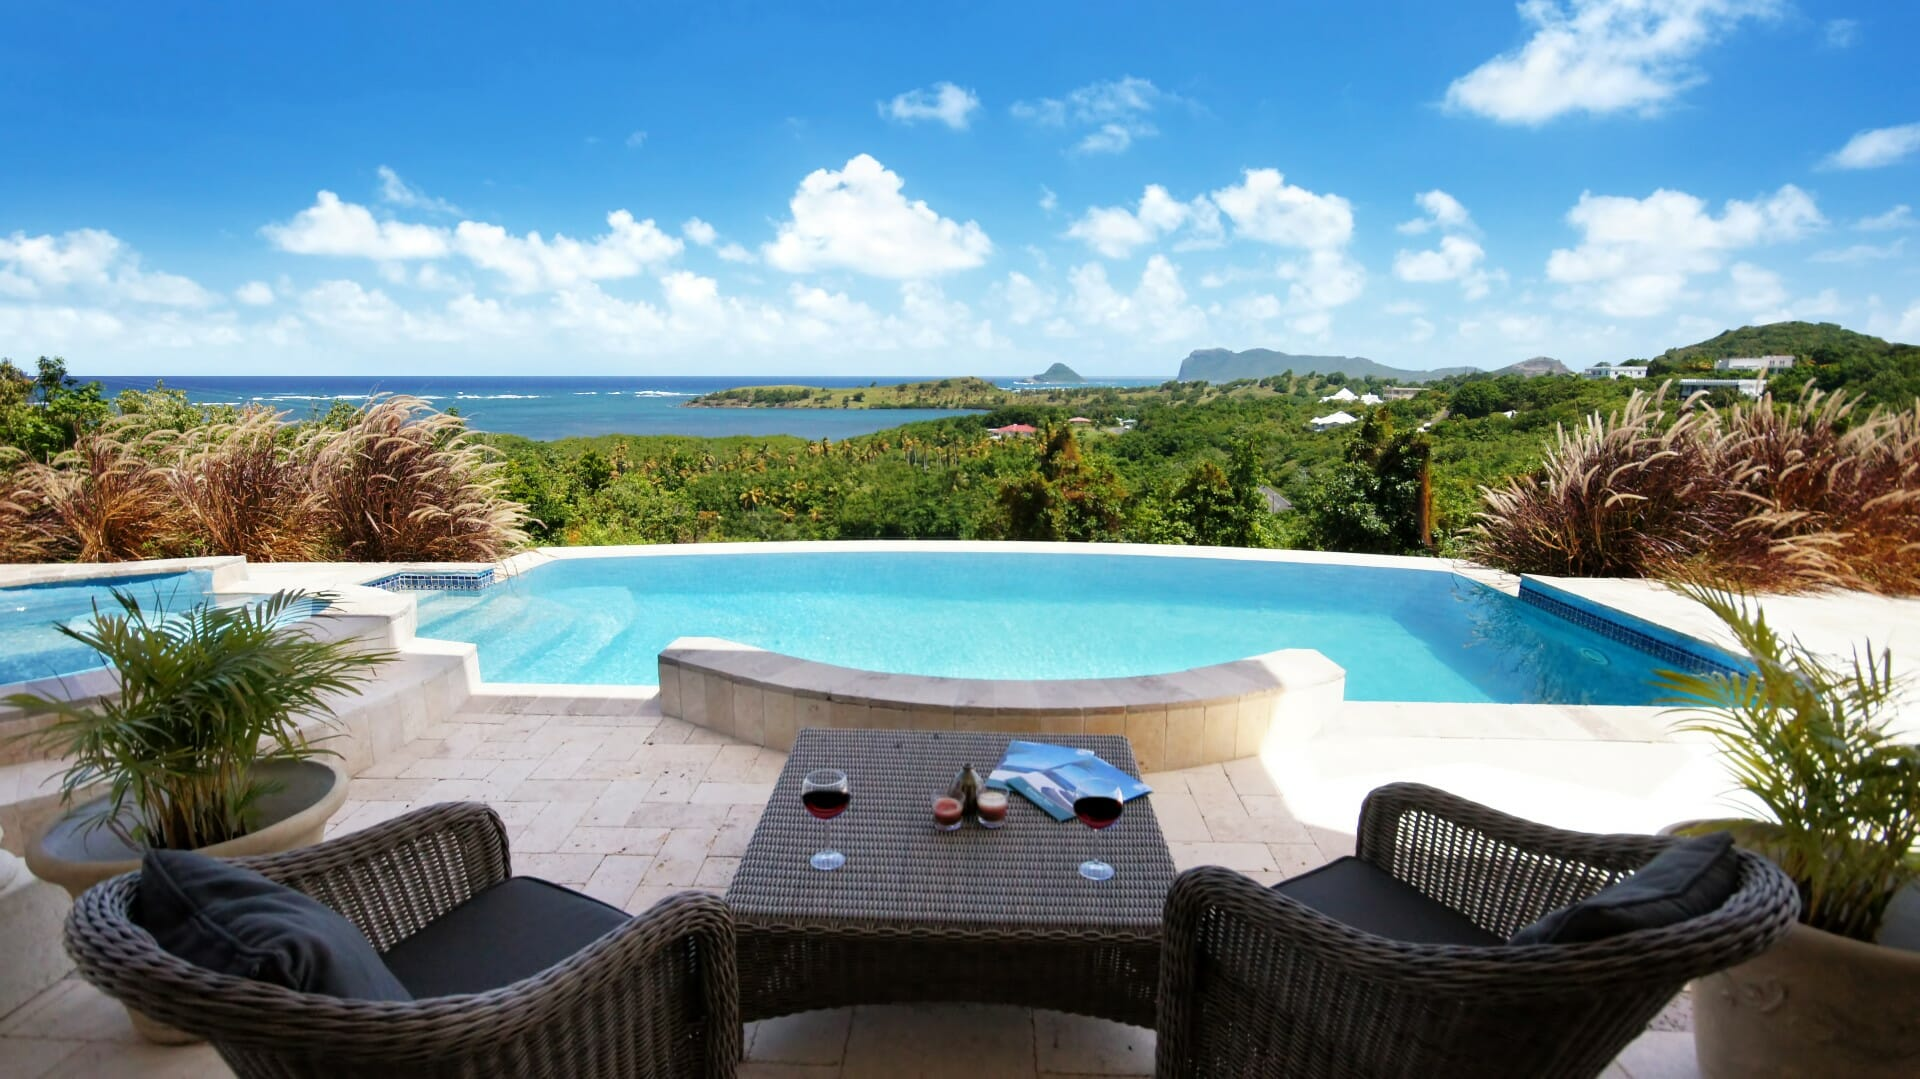 Emerald Vista Luxury Residences St. Lucia